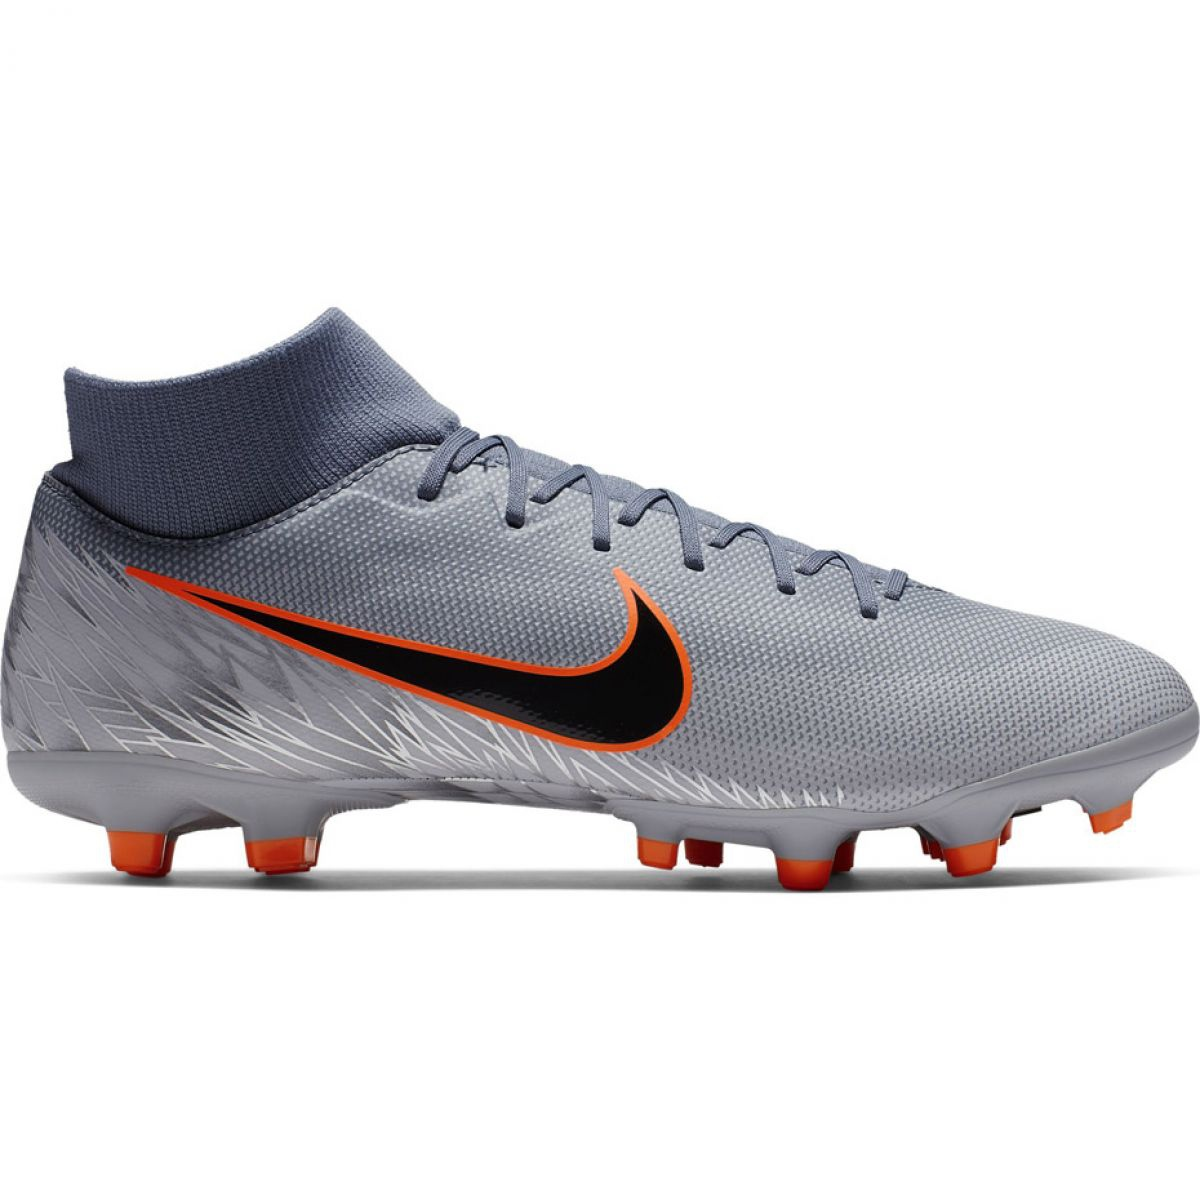 lace up in skate shoes excellent quality Fußballschuhe Nike Mercurial Superfly 6 Akademie FG / MG M AH7362-408 grau